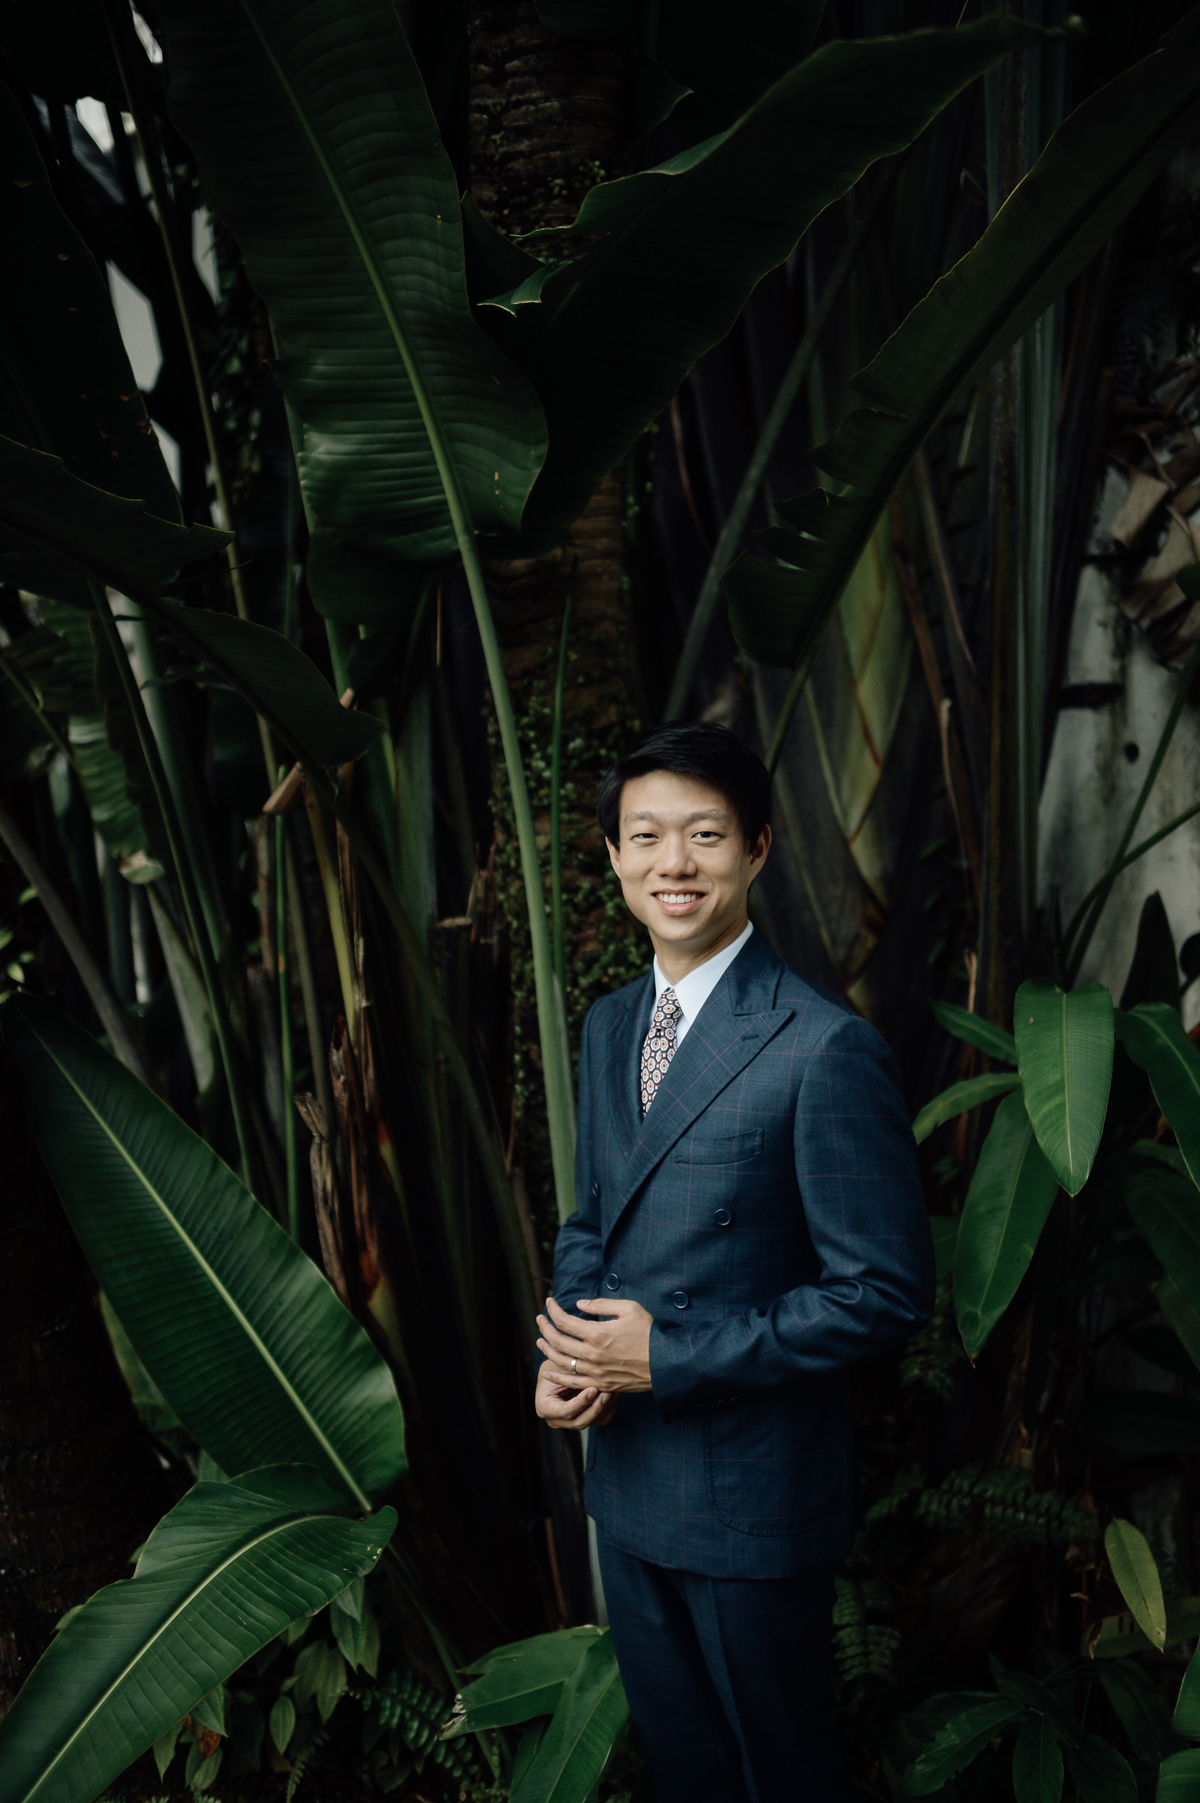 Portrait of a groom in Singapore